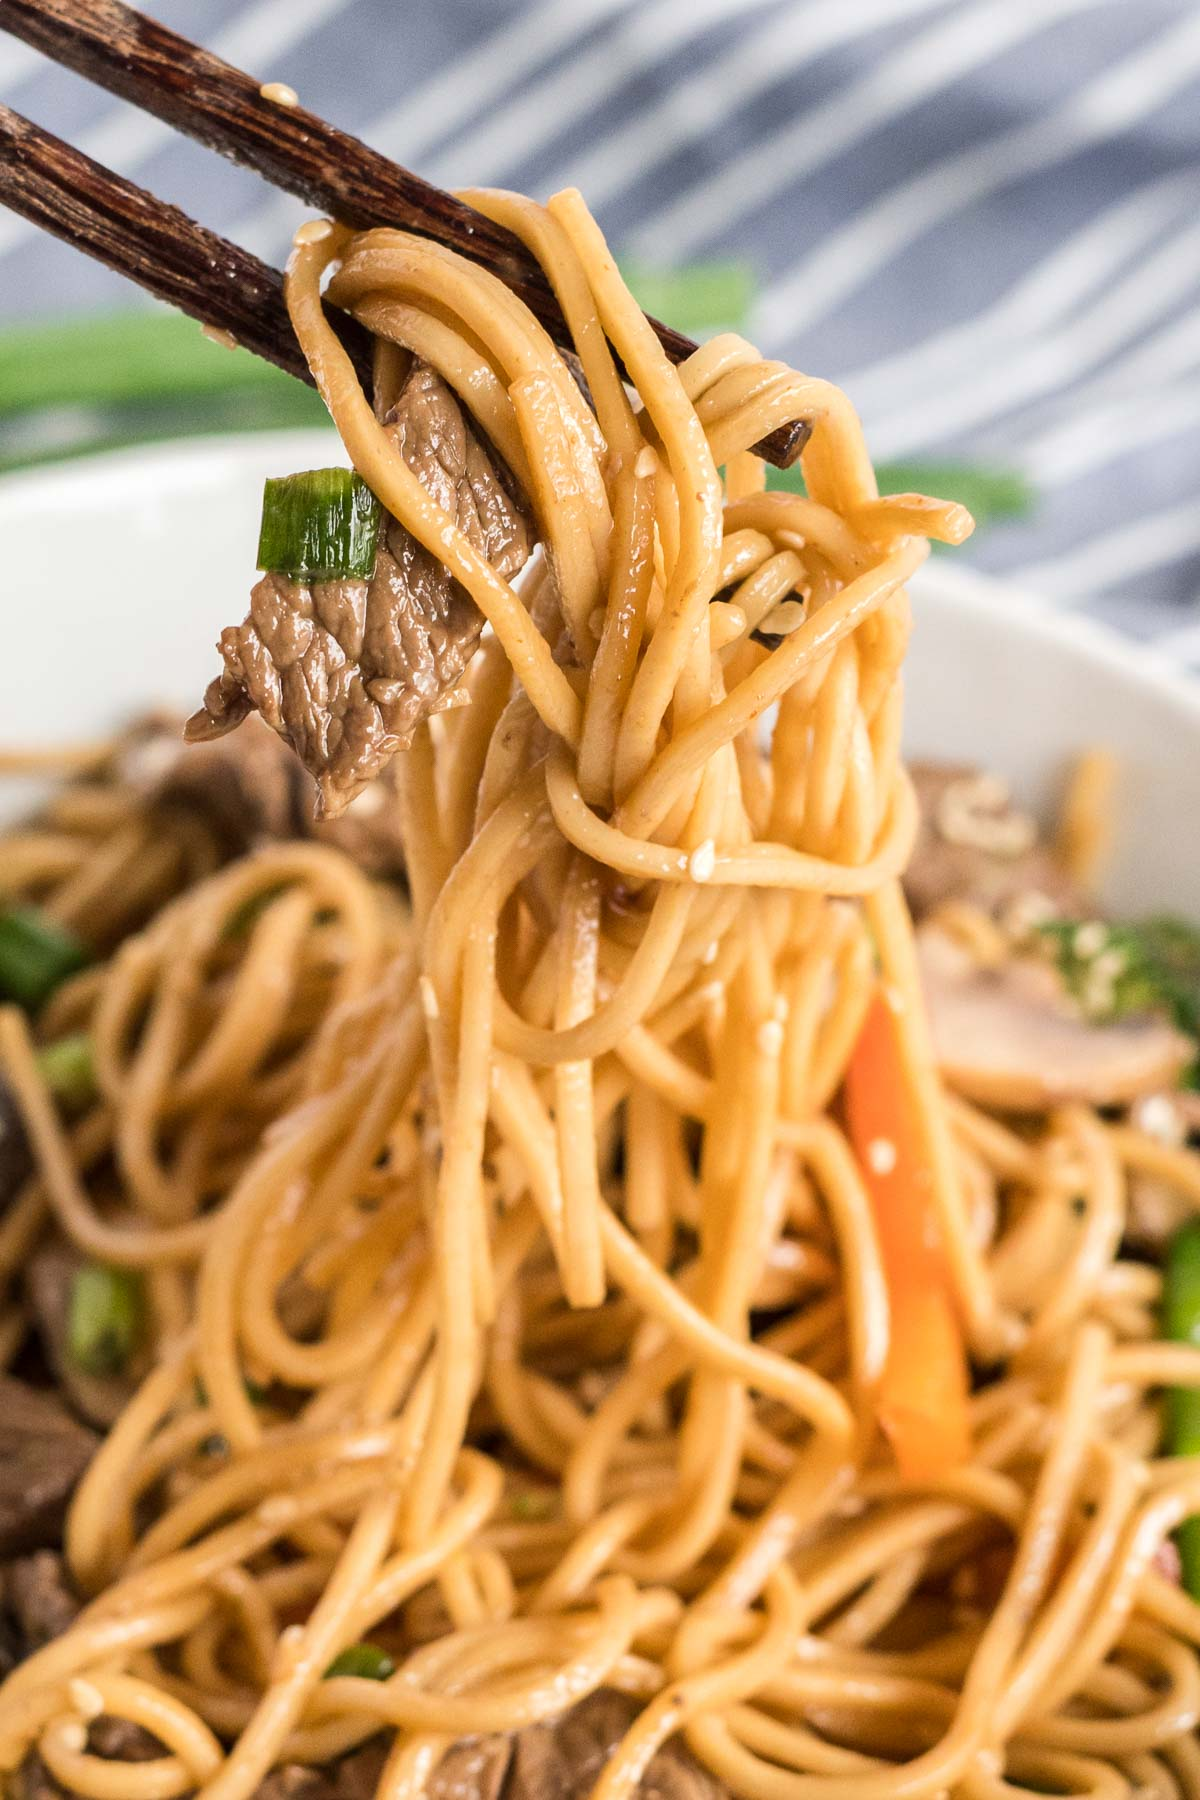 Chopsticks lifting some lo mein covered in sauce with beef strips and veggies.